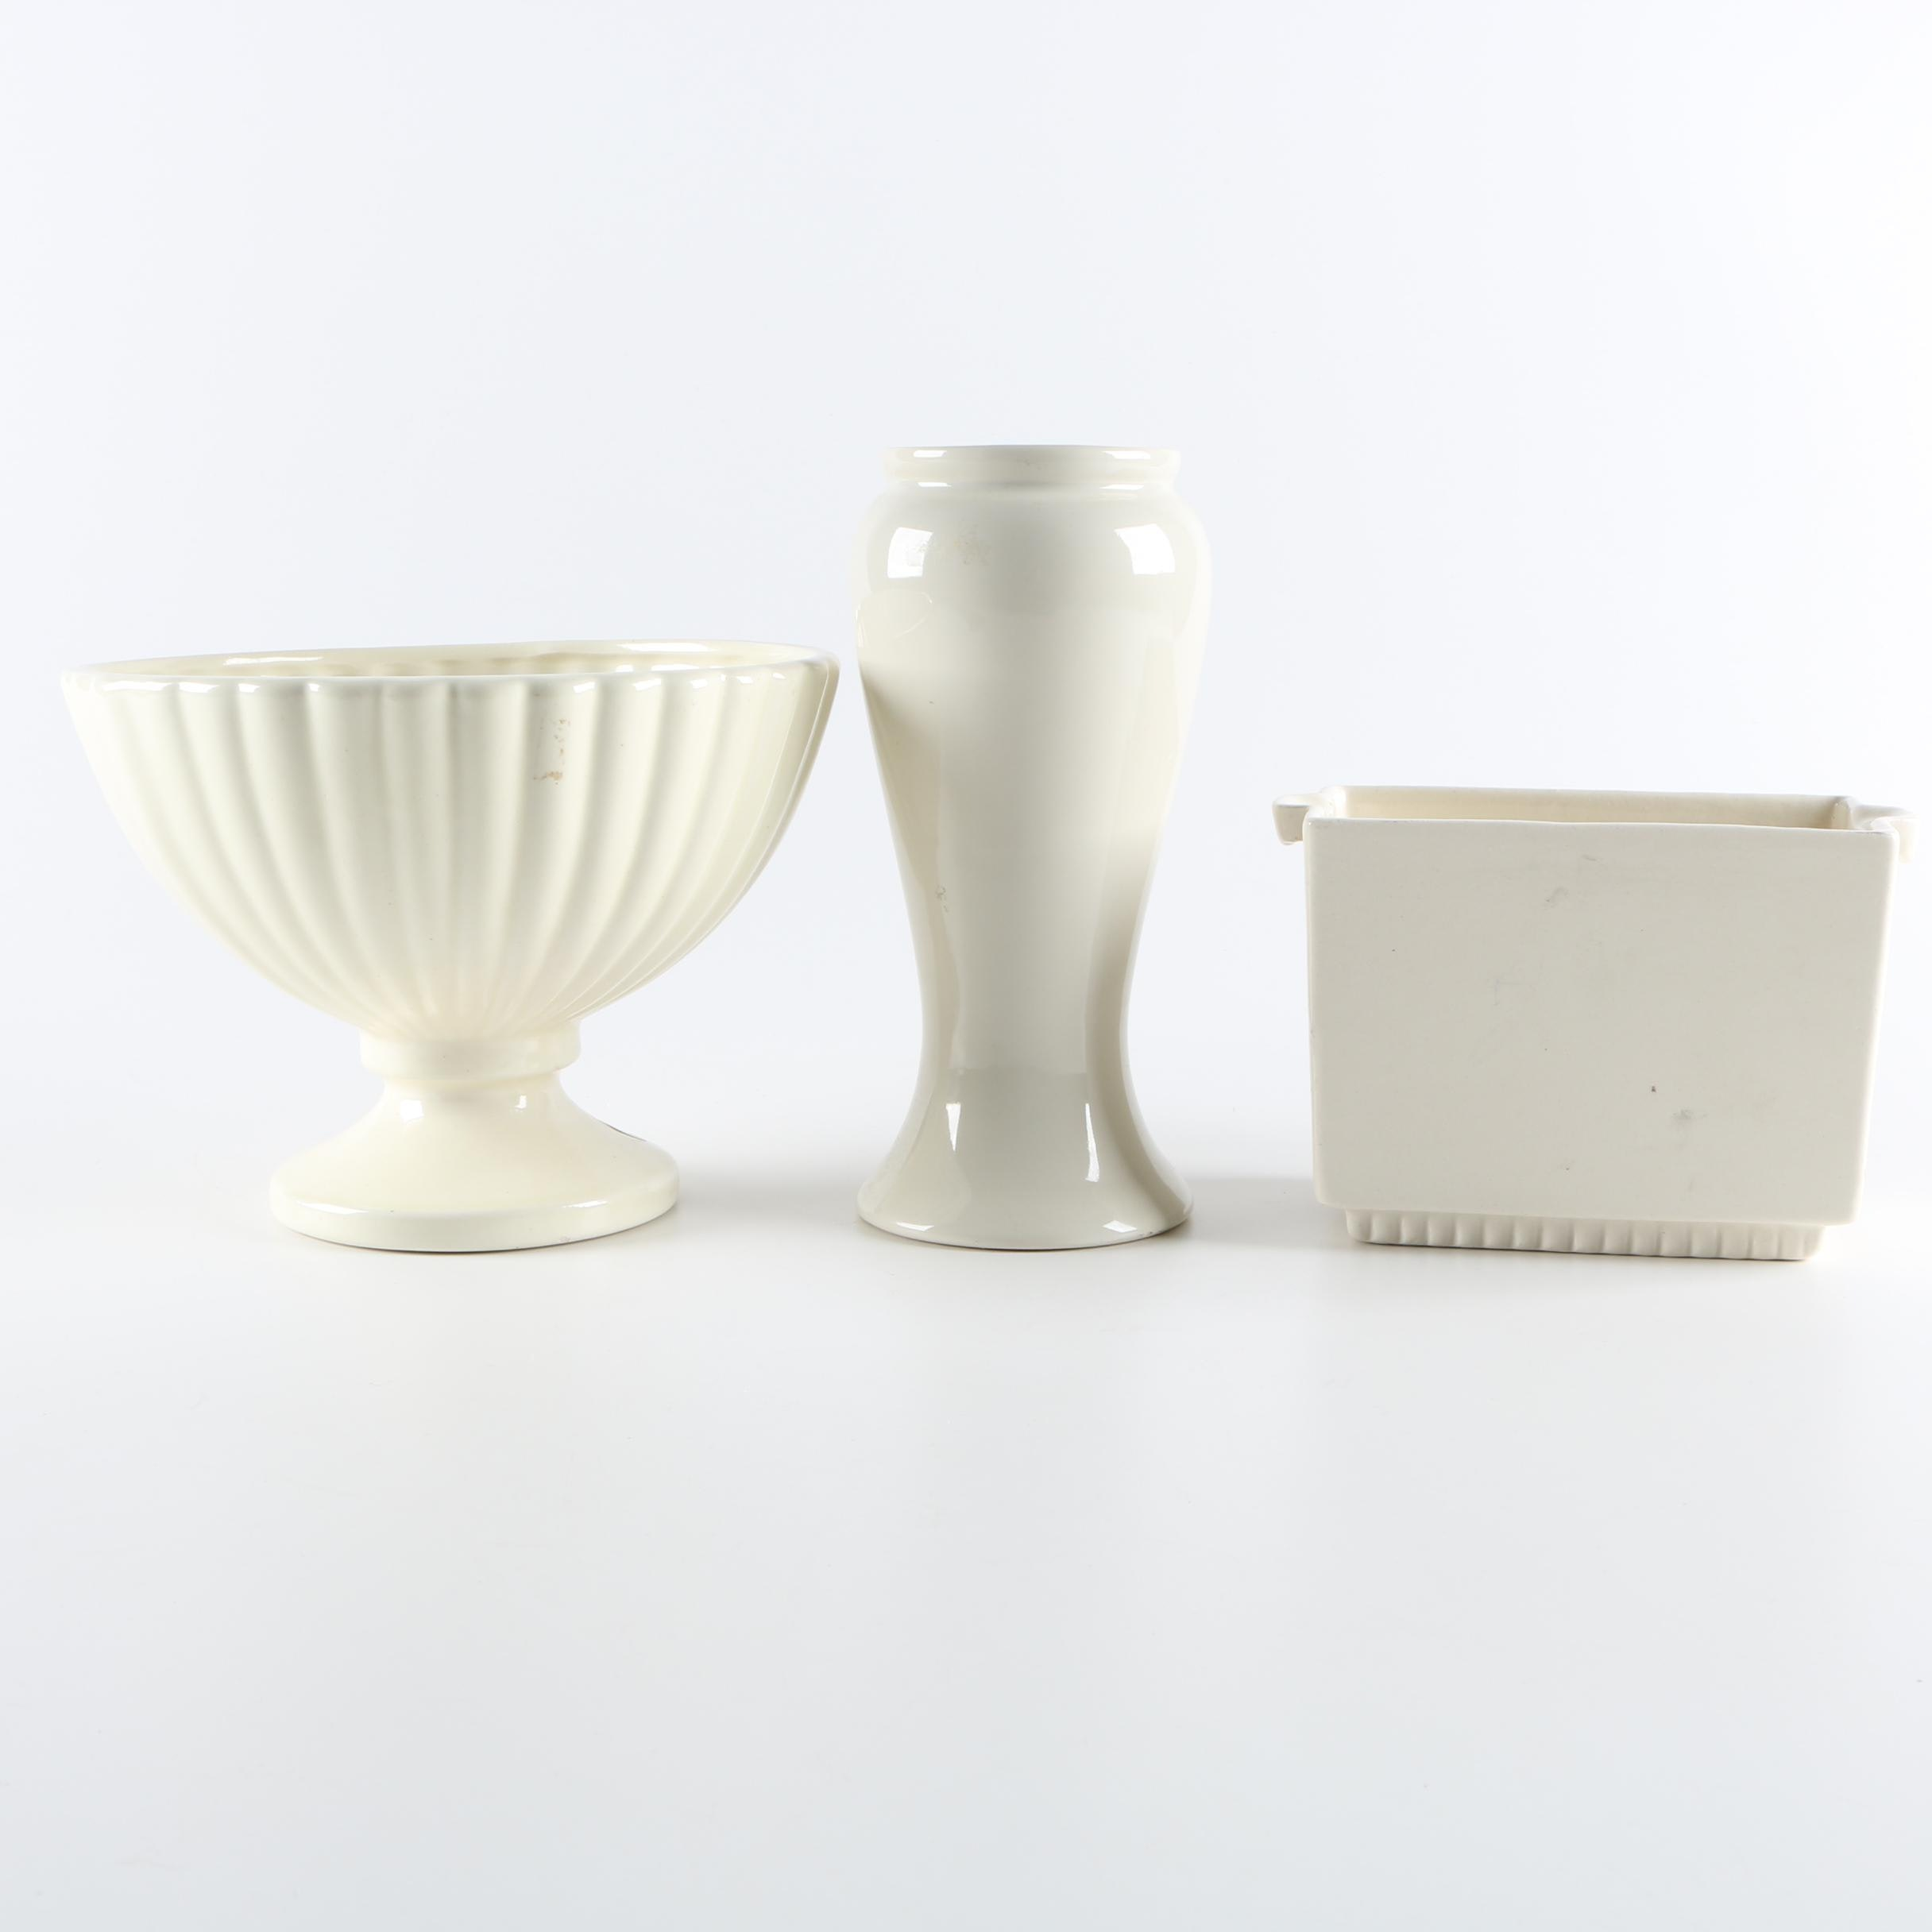 Haeger Pottery Planters and Vase